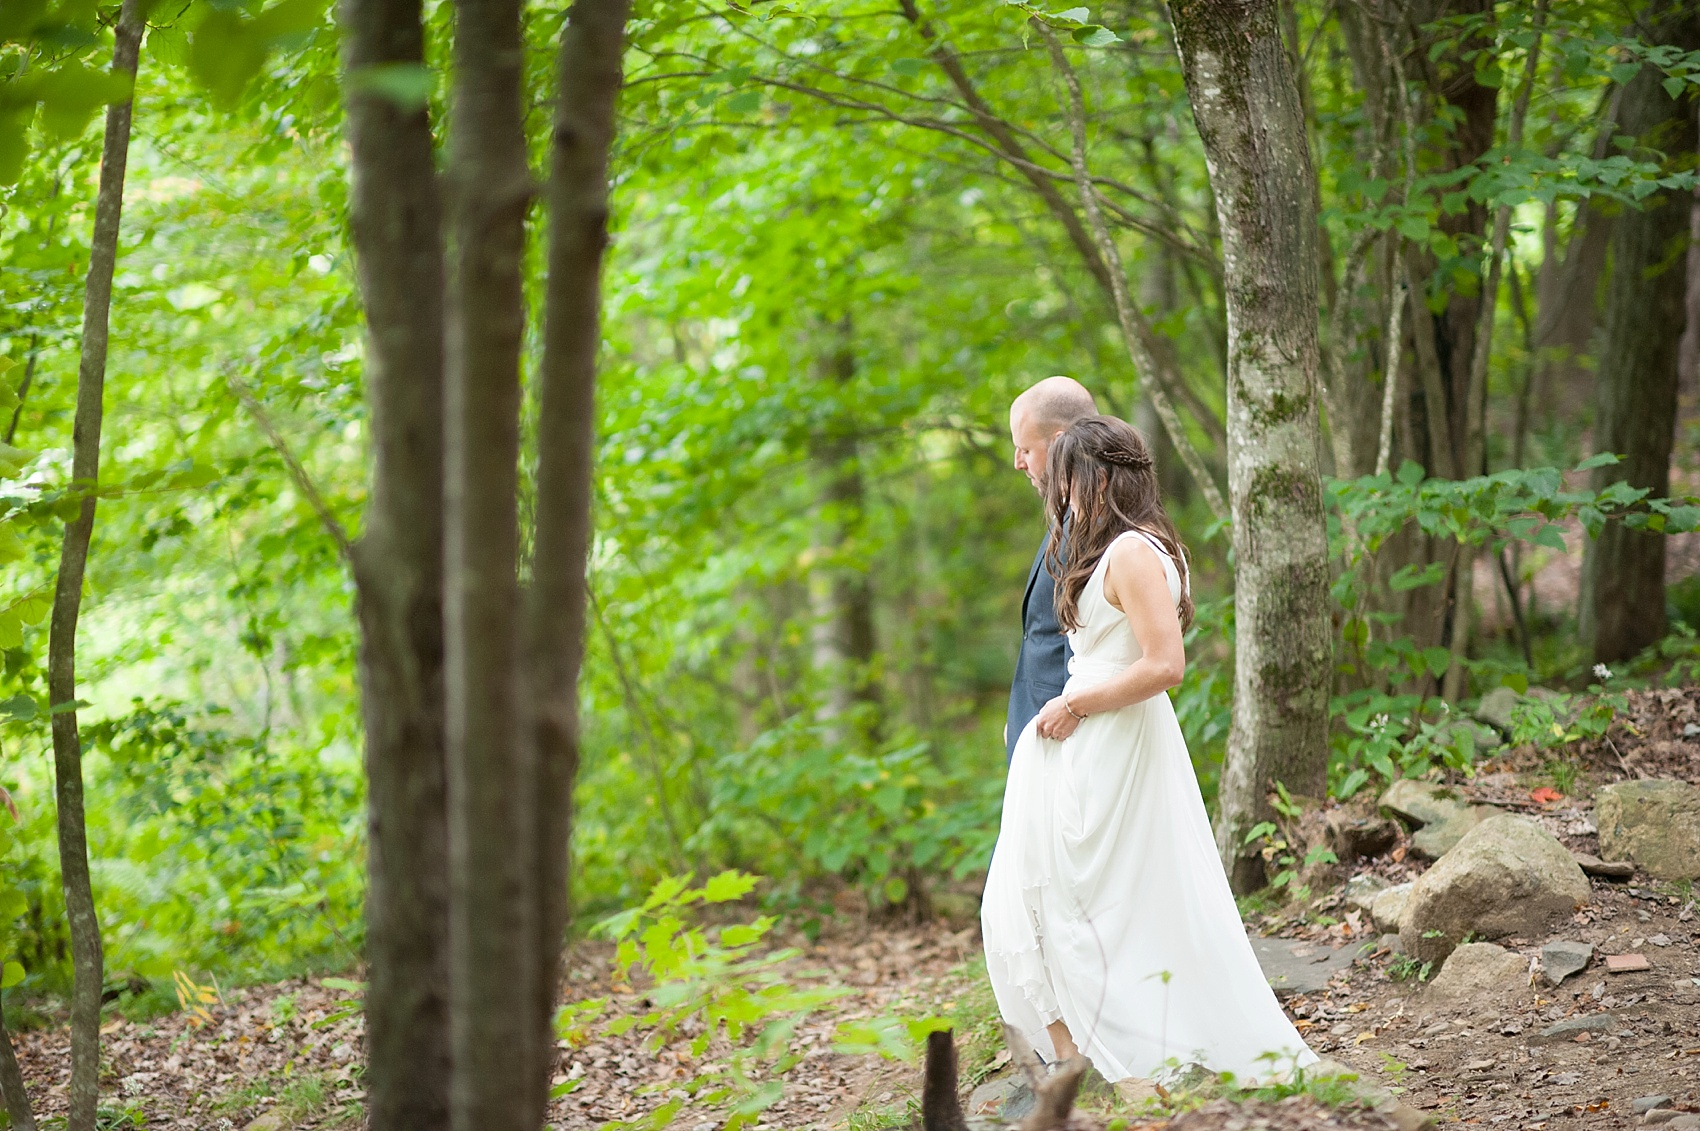 Bride and groom forest photos at their rustic Massachusetts Berkshires wedding at Camp Wa Wa Segowea. Photos by Mikkel Paige Photography, destination wedding photographer.